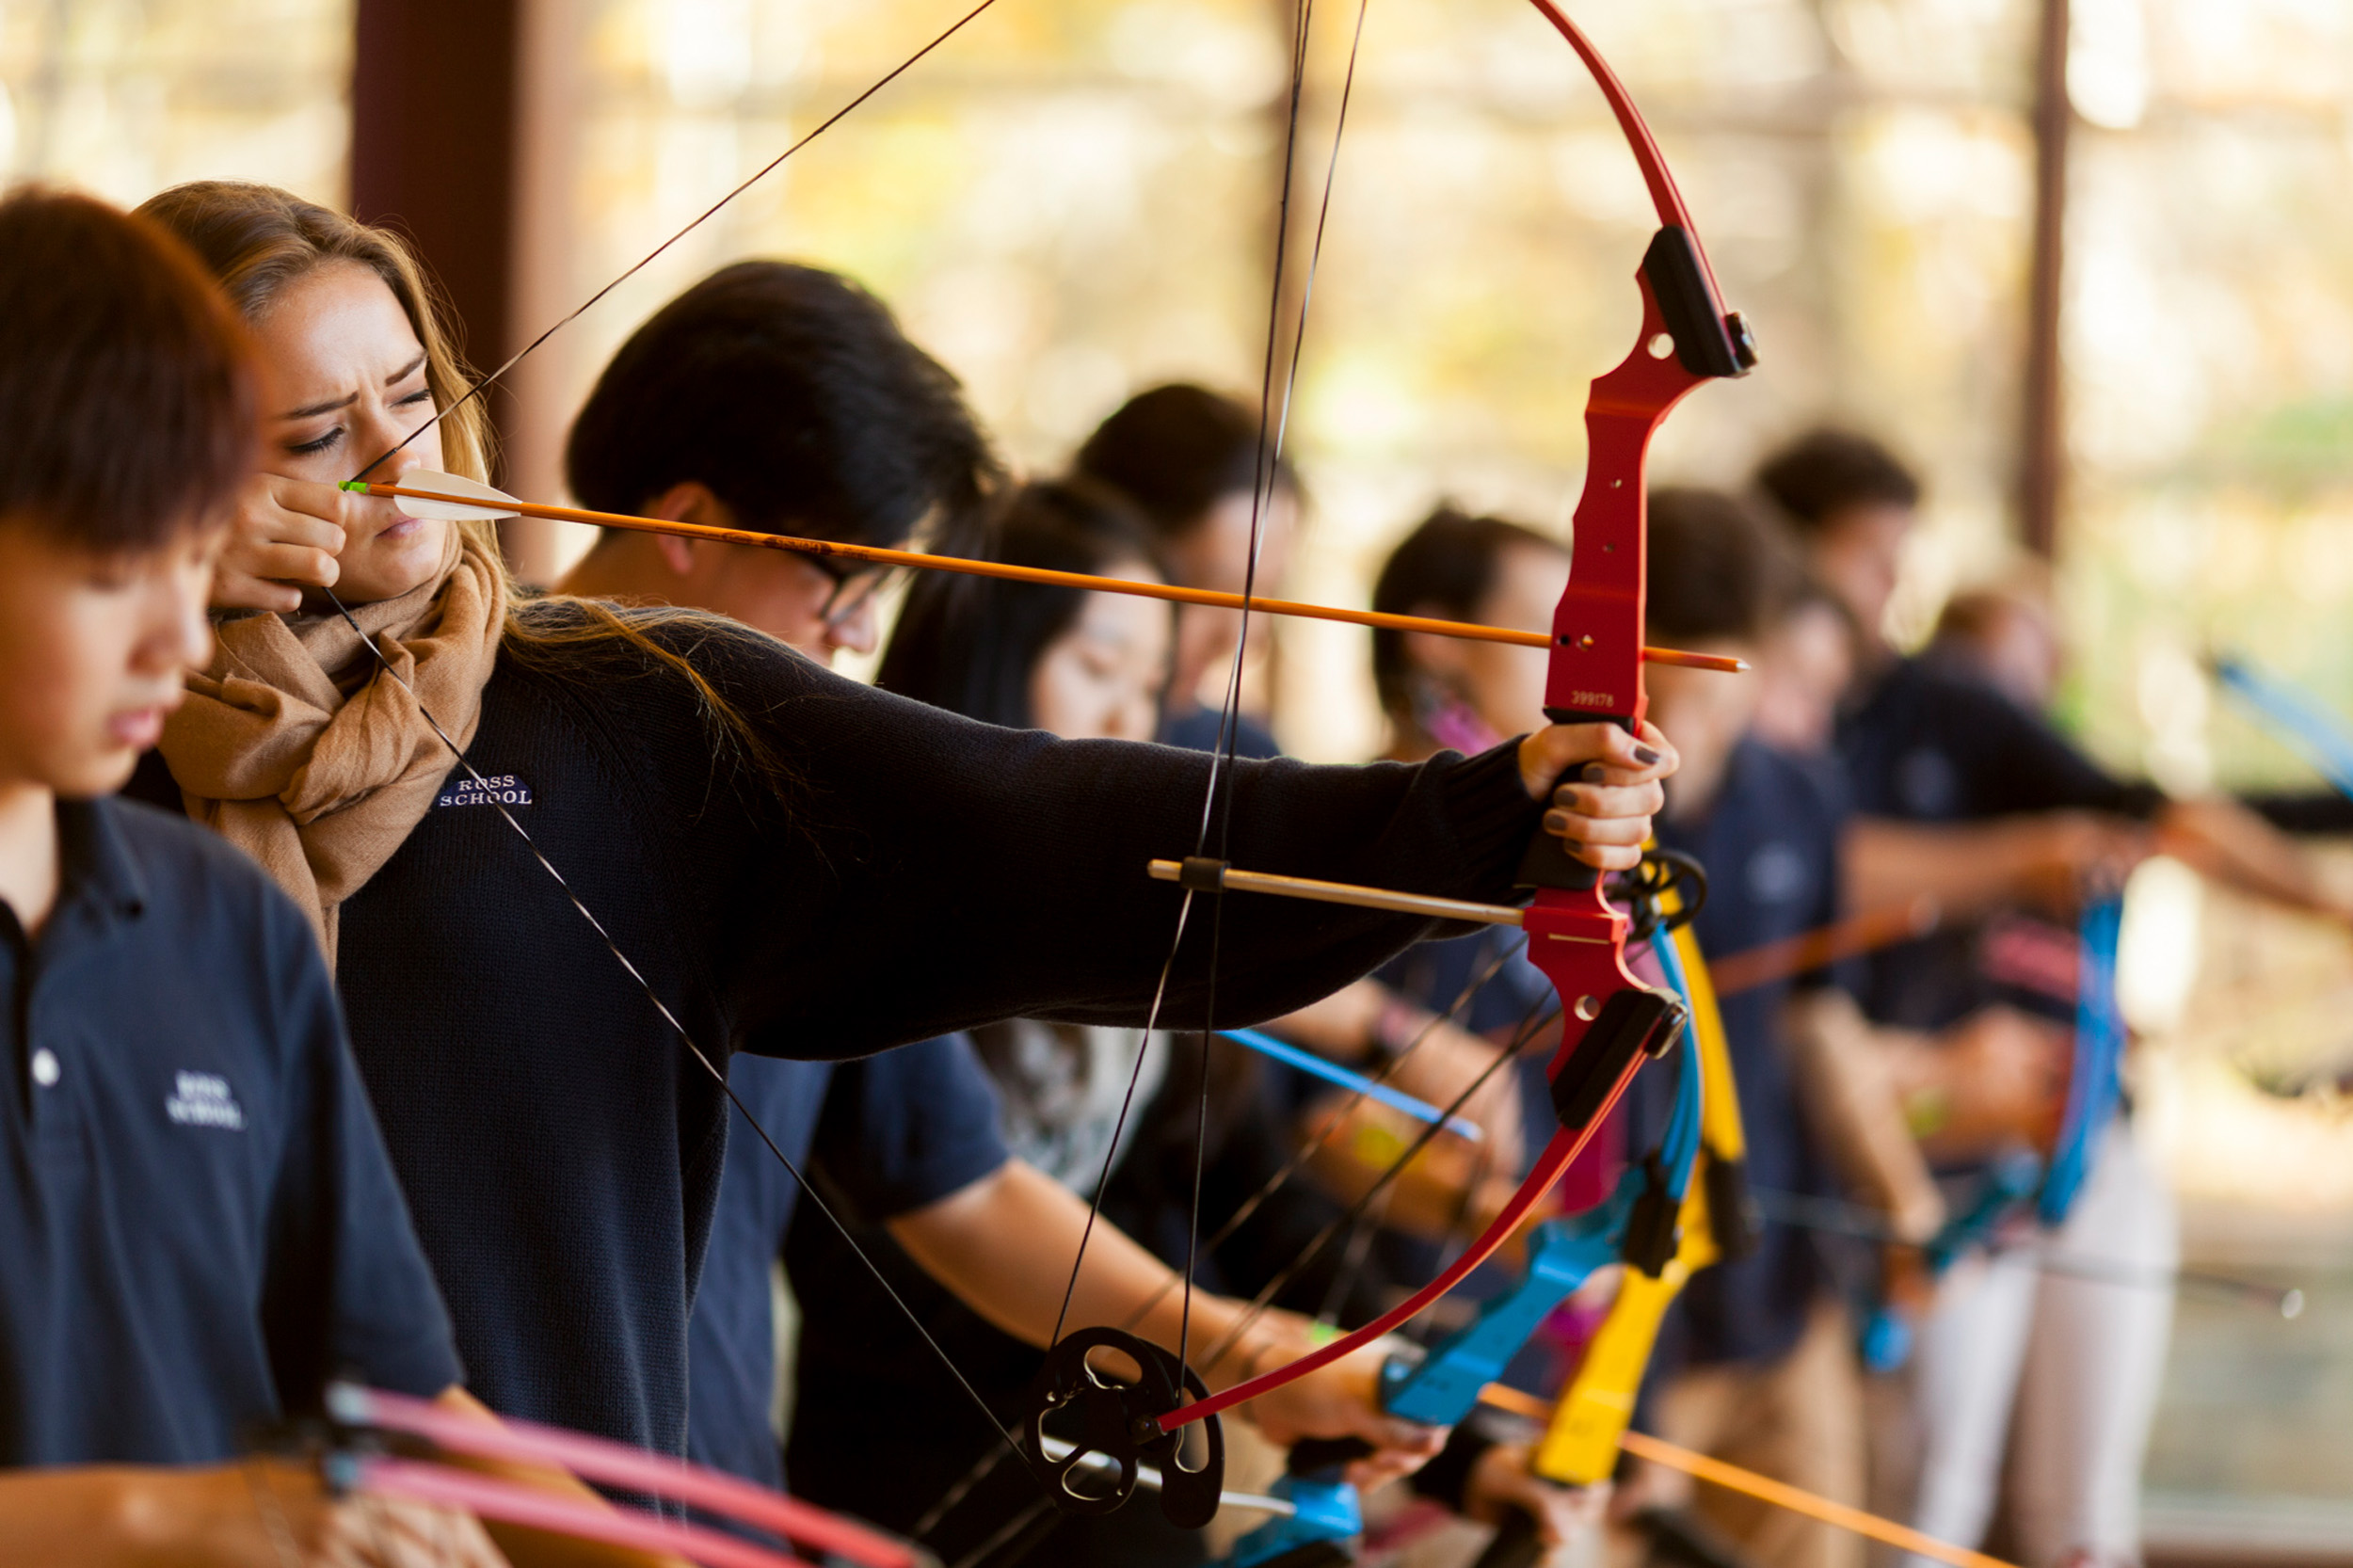 Ross Upper School students engaged in archery lesson.